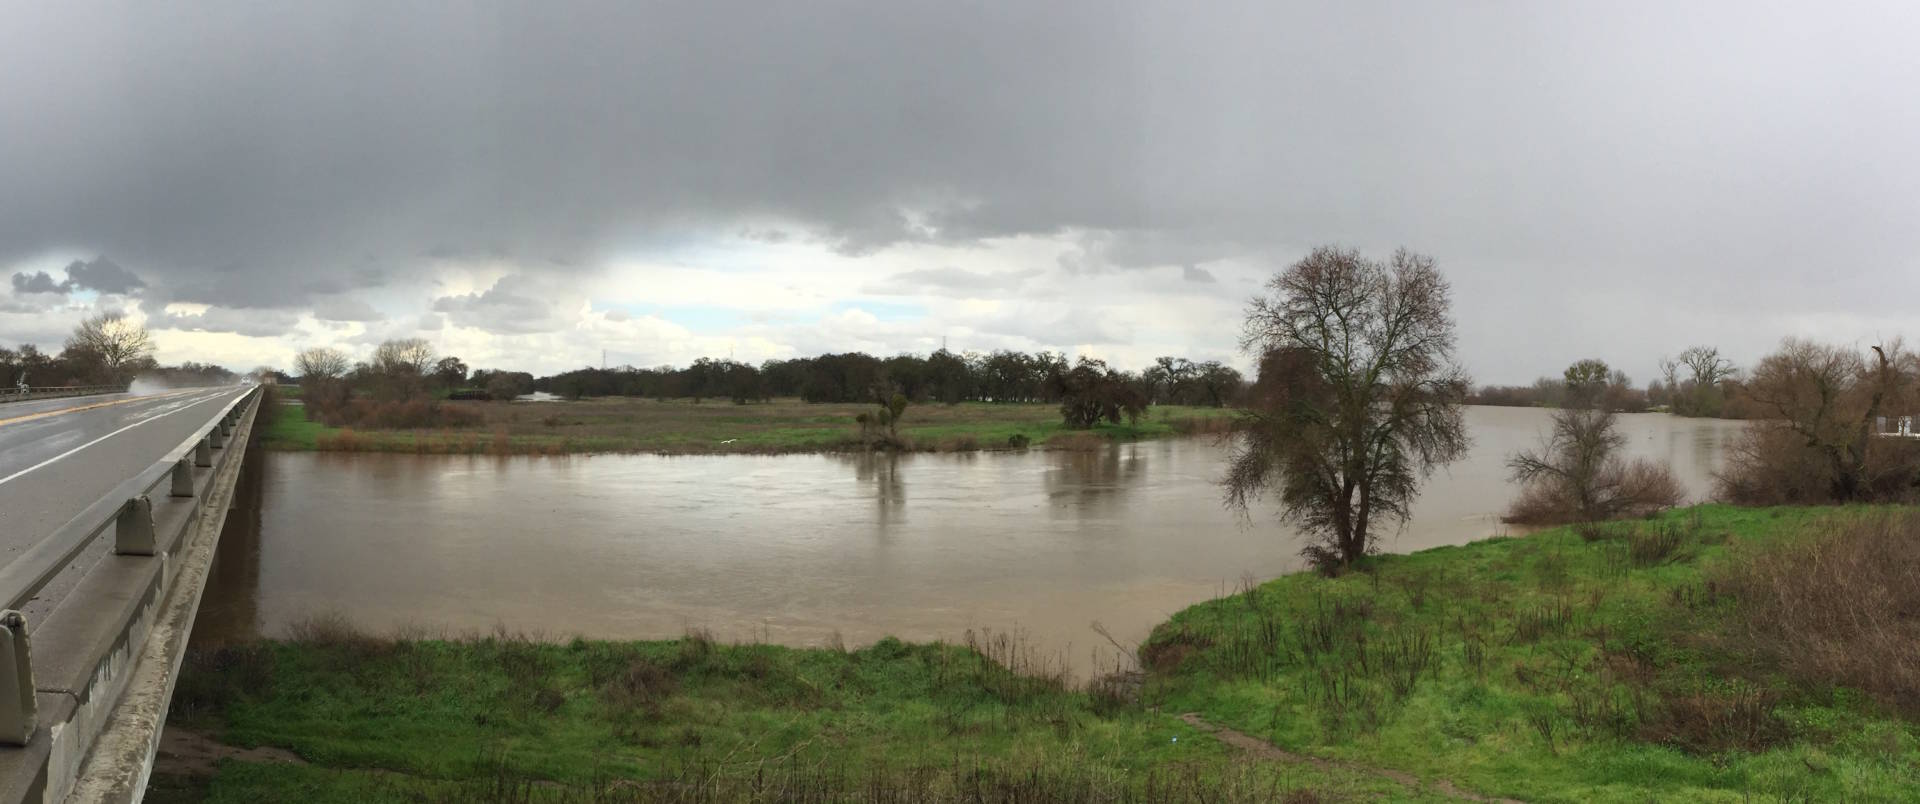 The San Joaquin River, which often runs dry before reaching its mouth, spreads out along Hwy 132 west of Modesto, after weekend storms. Craig Miller/KQED